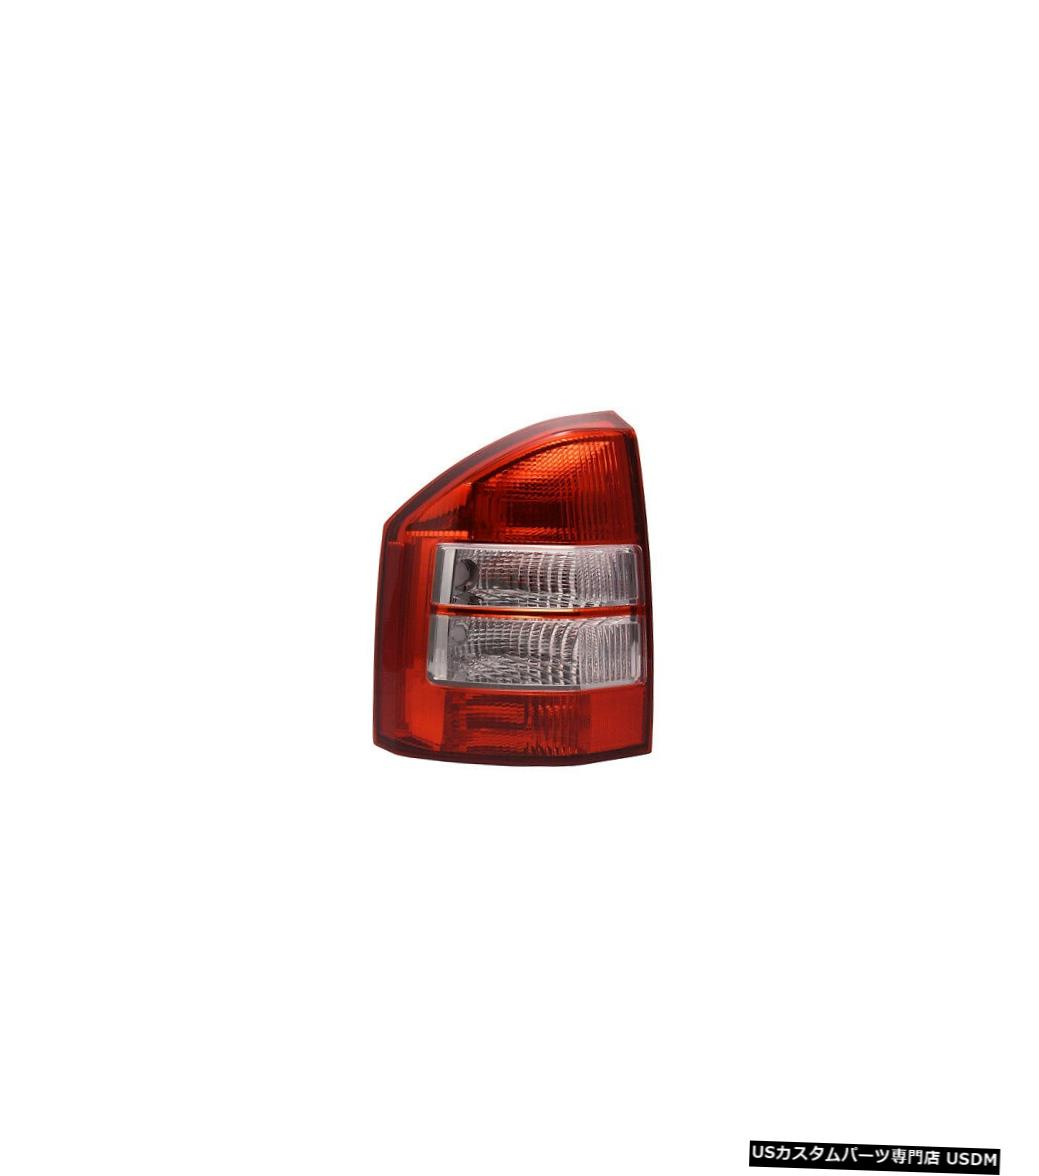 Tail light 07-10 Jeepコンパスドライバー用テールライトリアバックランプ Tail Light Rear Back Lamp for 07-10 Jeep Compass Driver Left